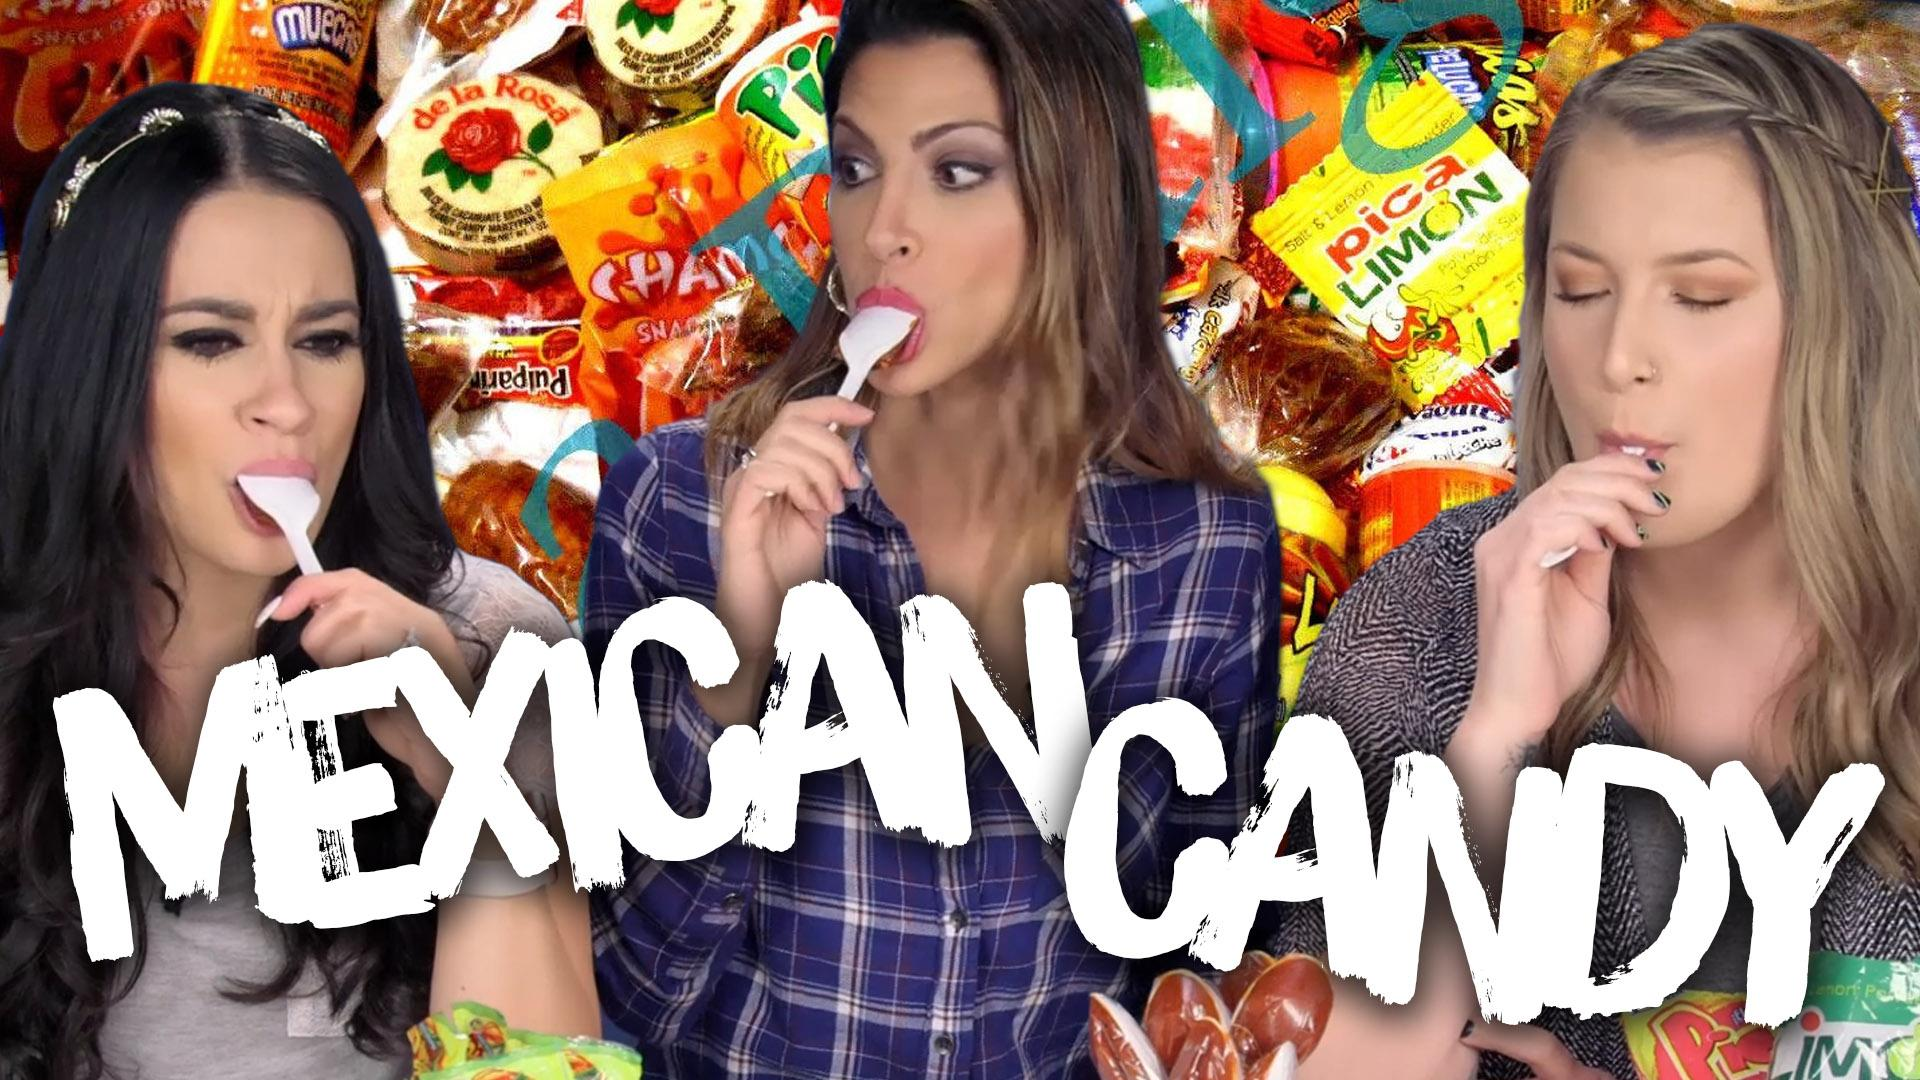 5 Crazy Mexican Candies (Cheat Day)